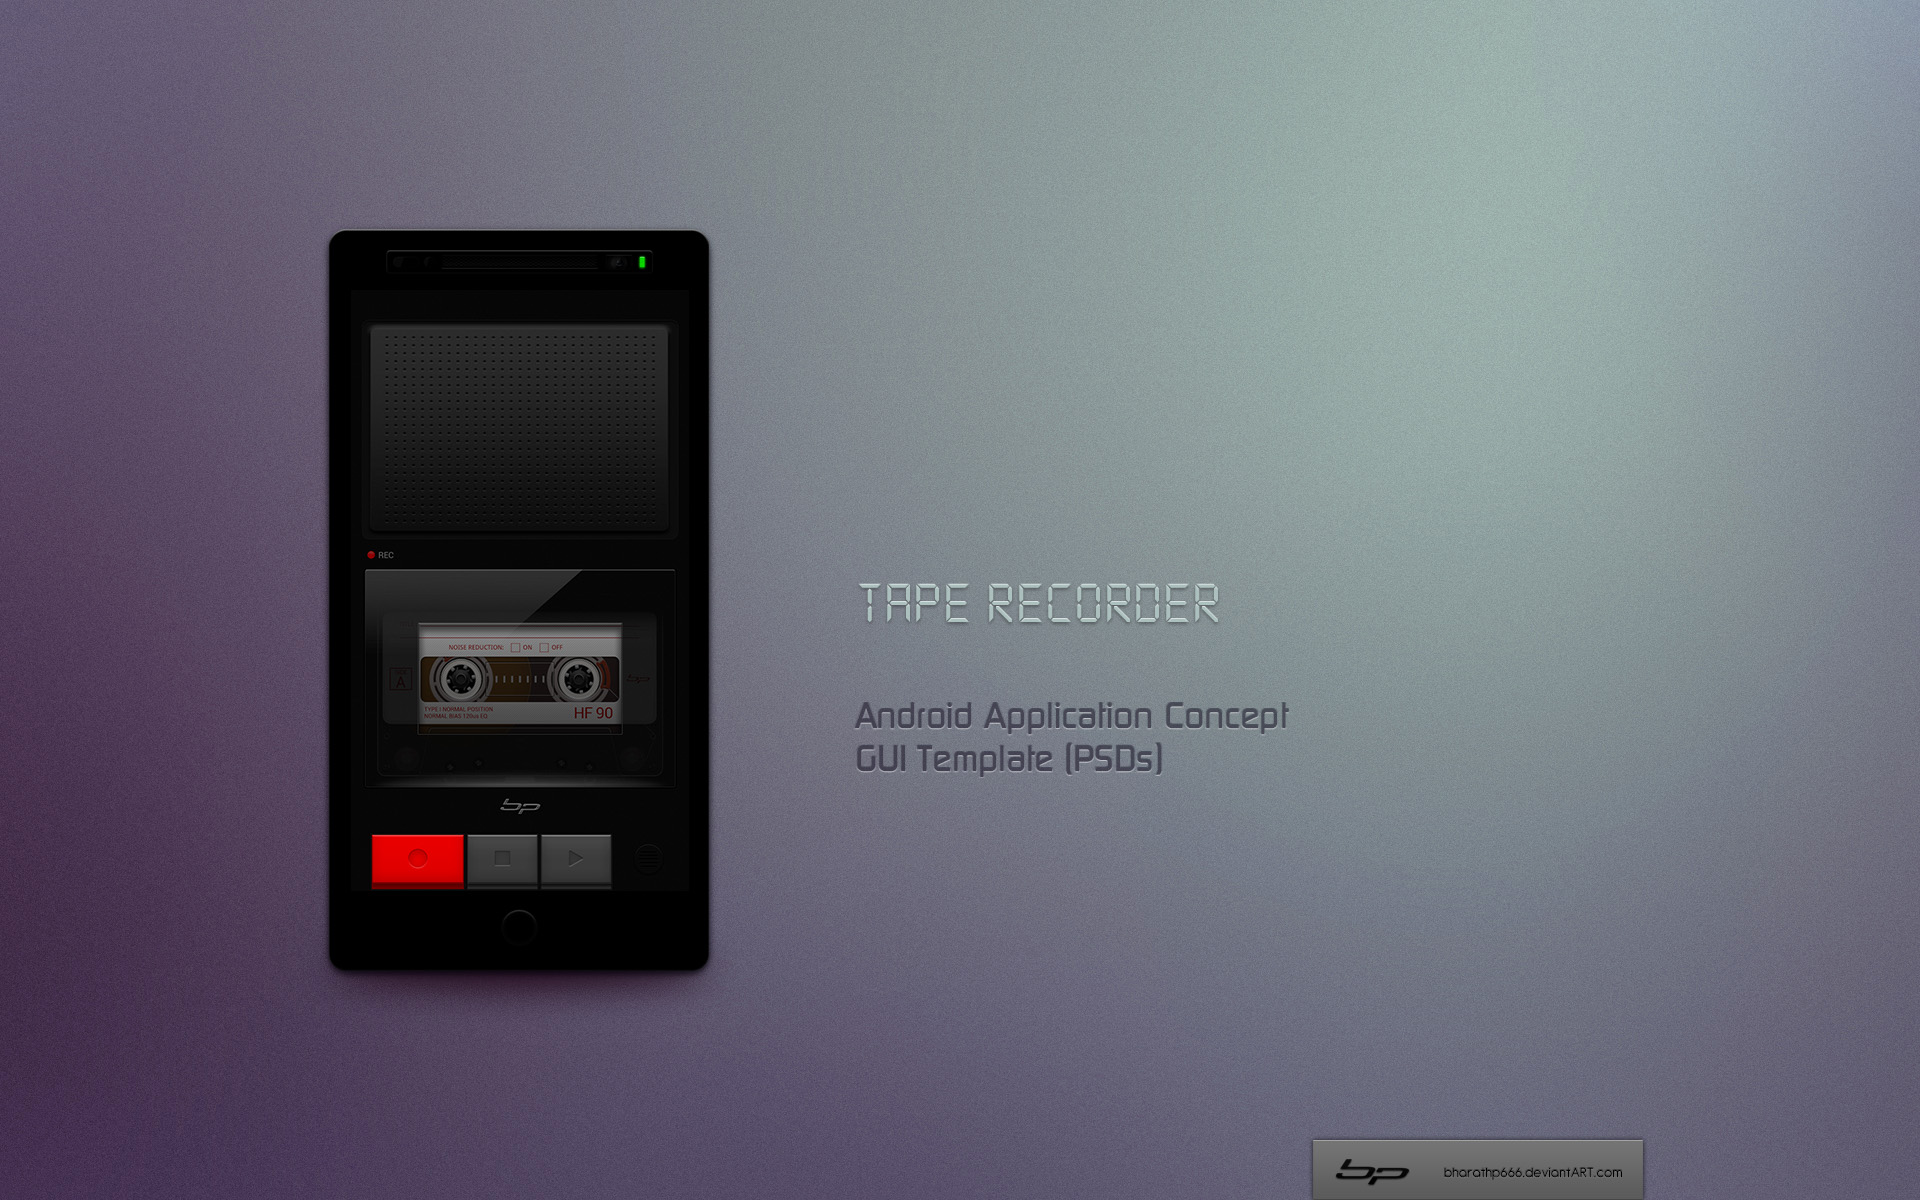 Android Tape Recorder App Concept By Bharathp666 On Deviantart